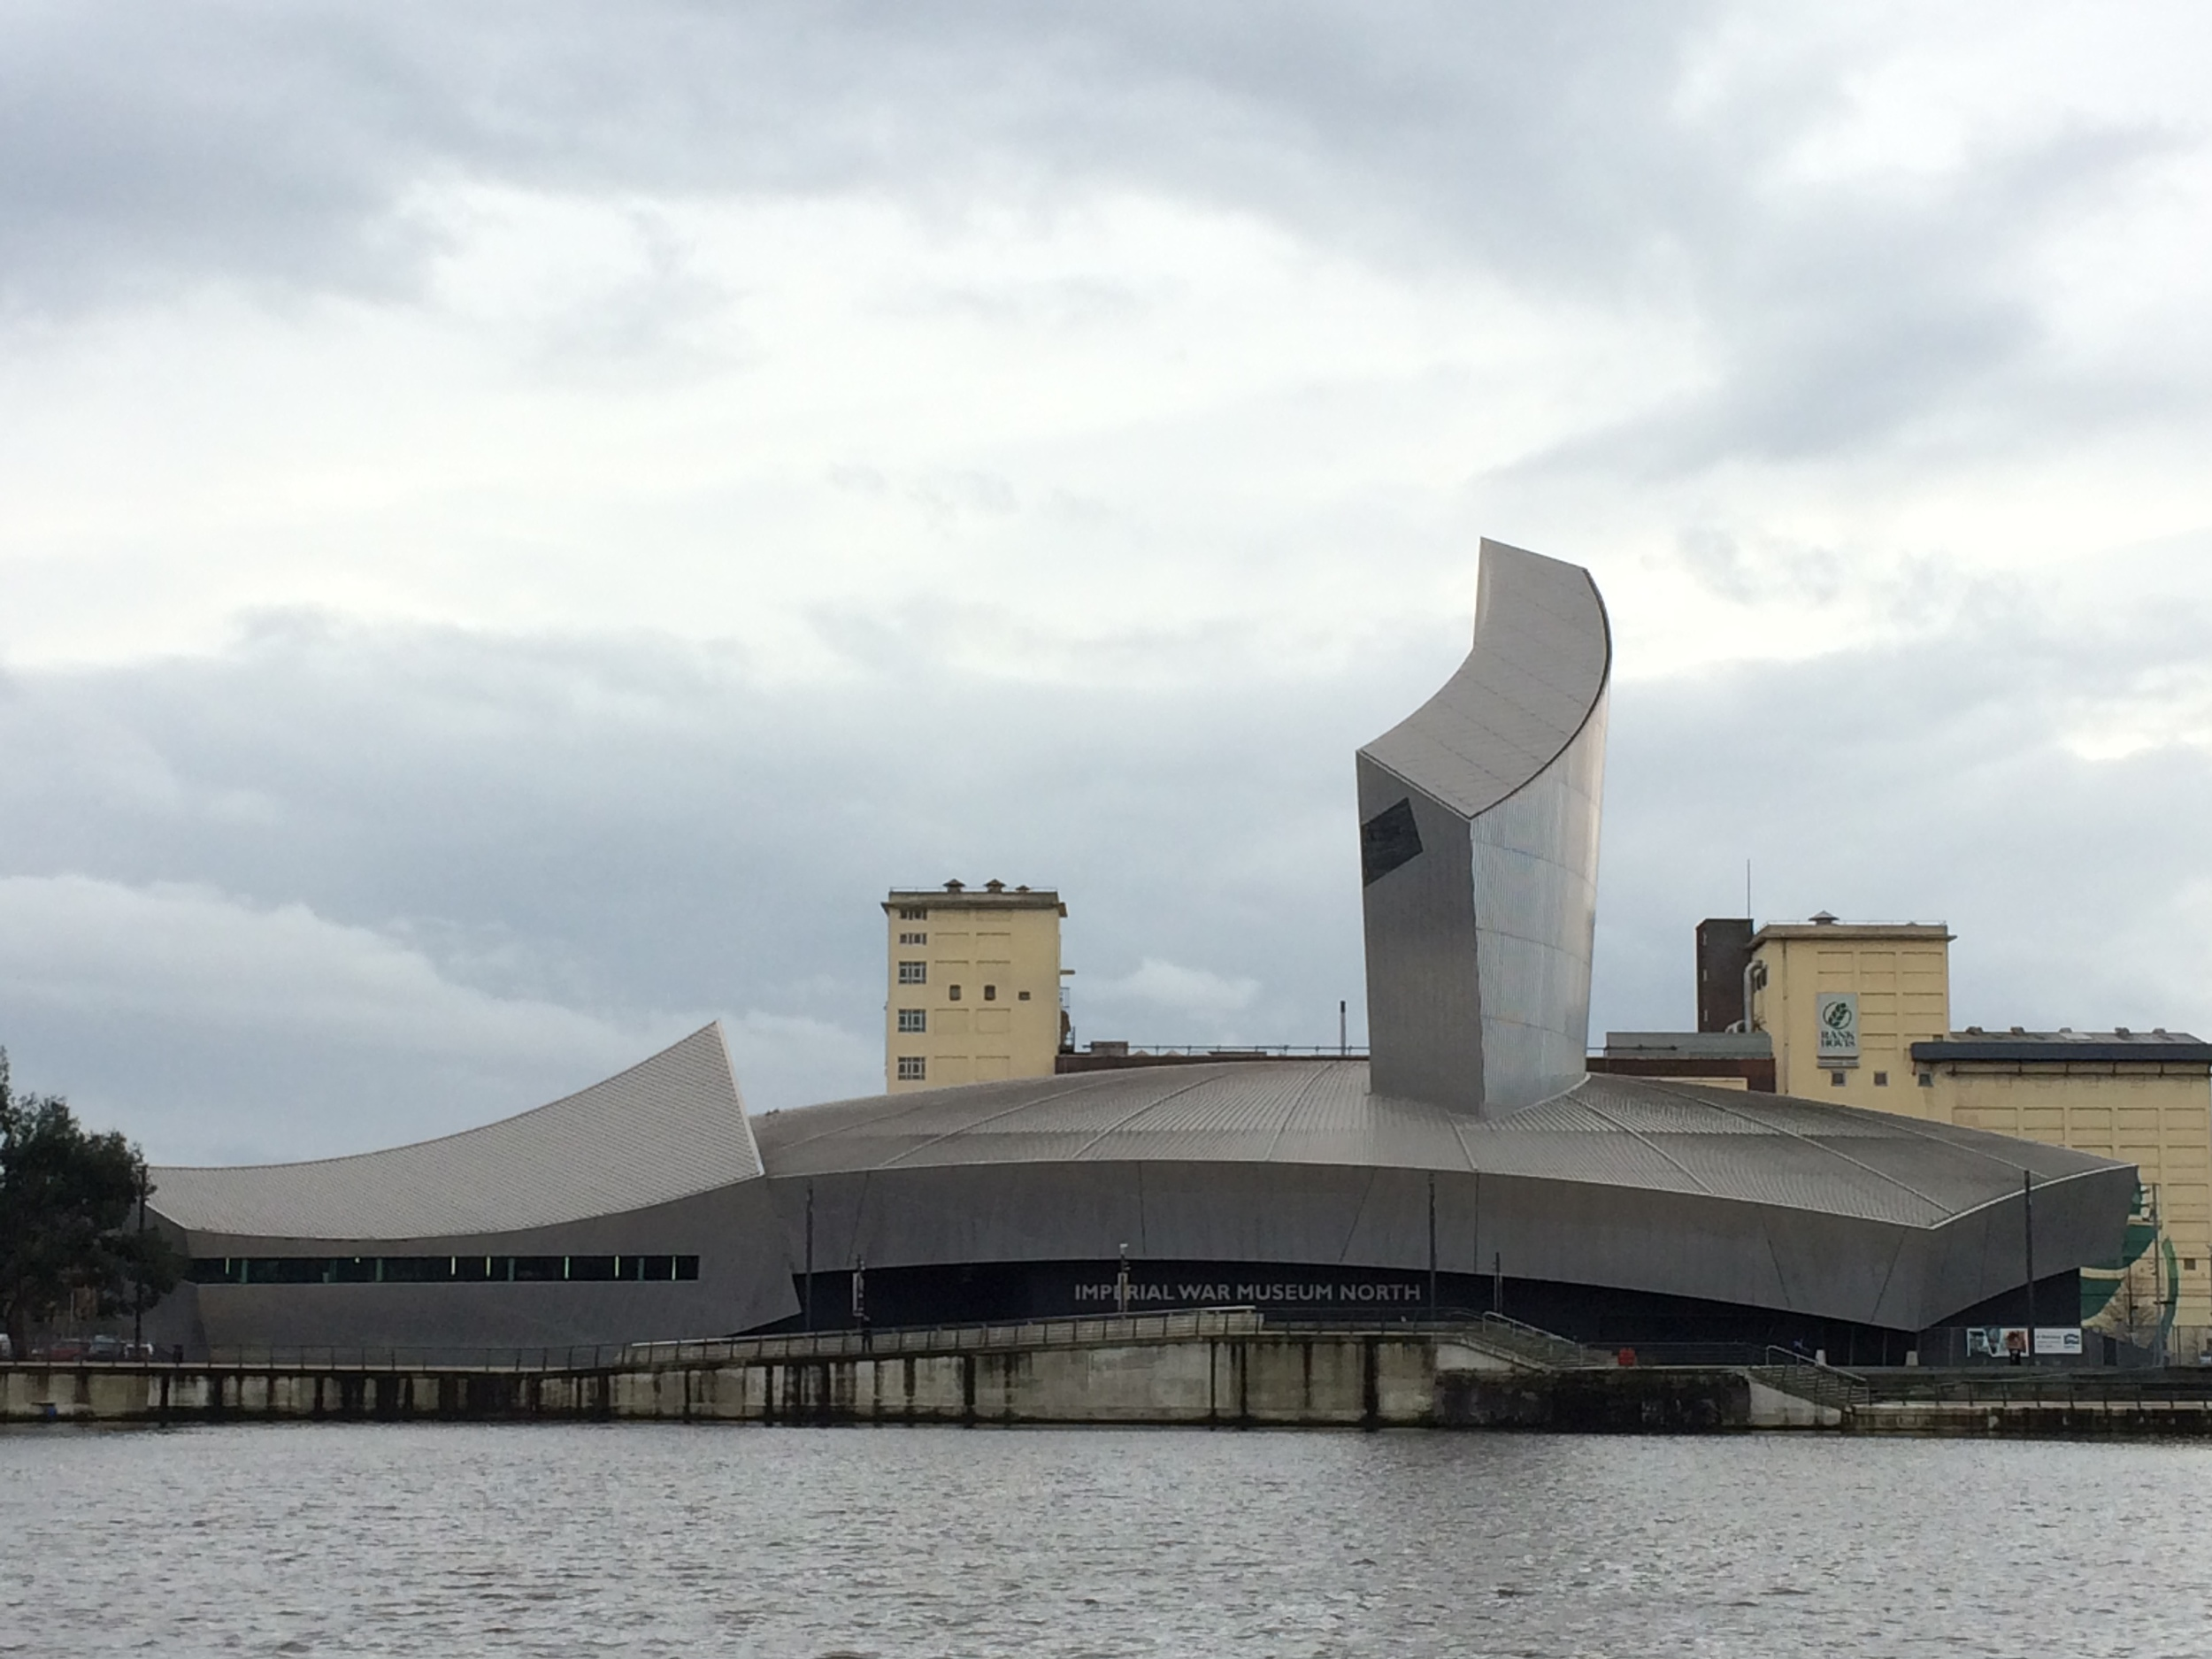 The Imperial War Museum North as seen from the banks of MediaCityUK. The viewing platform can be seen sticking out of the roof.